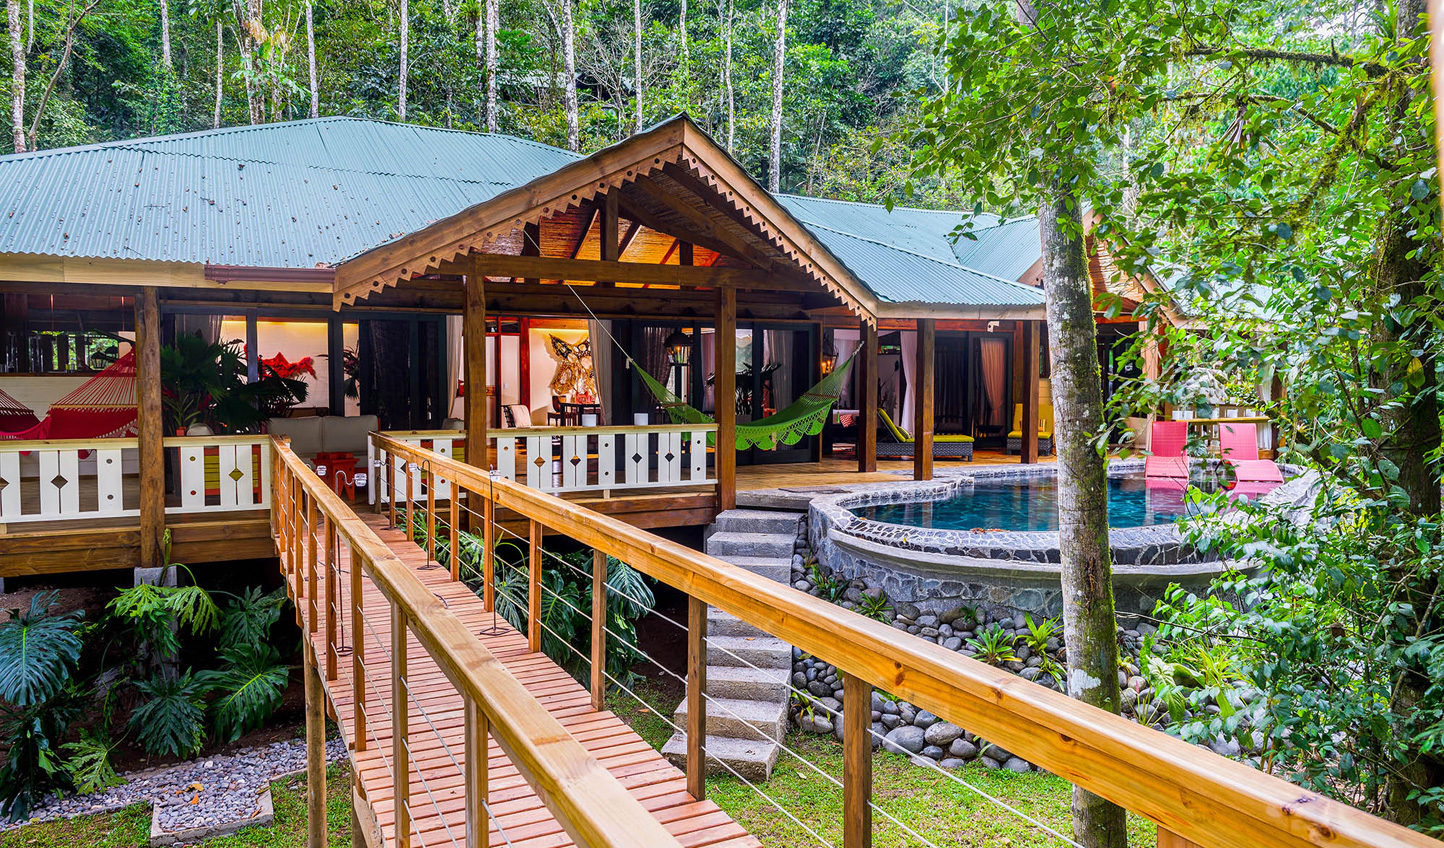 Stay at luxurious eco-lodge, Pacuare Lodge, on Costa Rica's Pacuare River